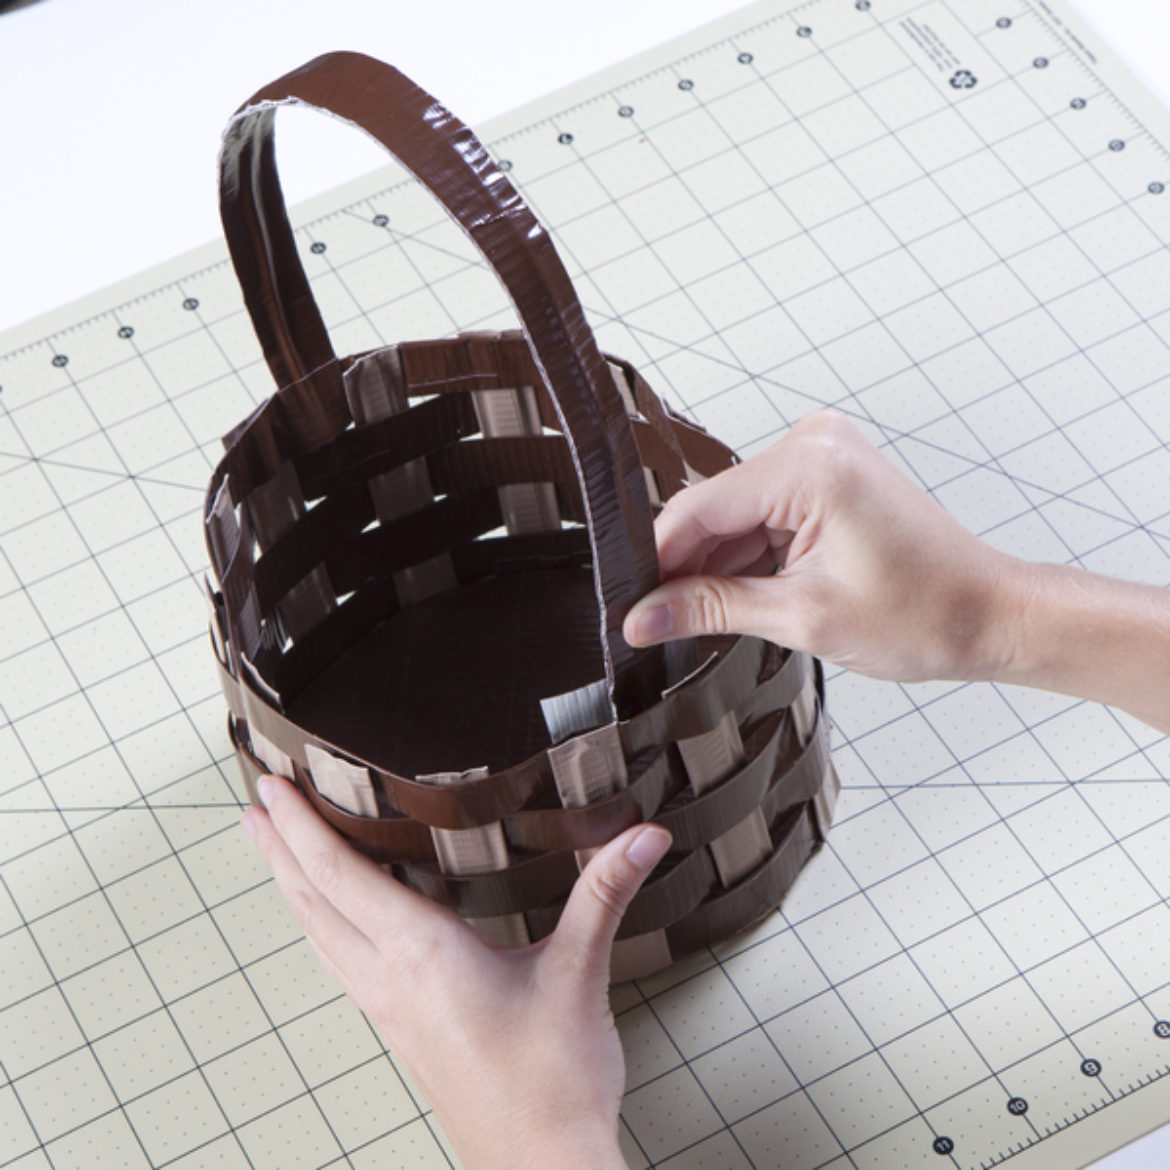 Handle fashioned from a double sided strip of Duck Tape being taped to the inside of the basket